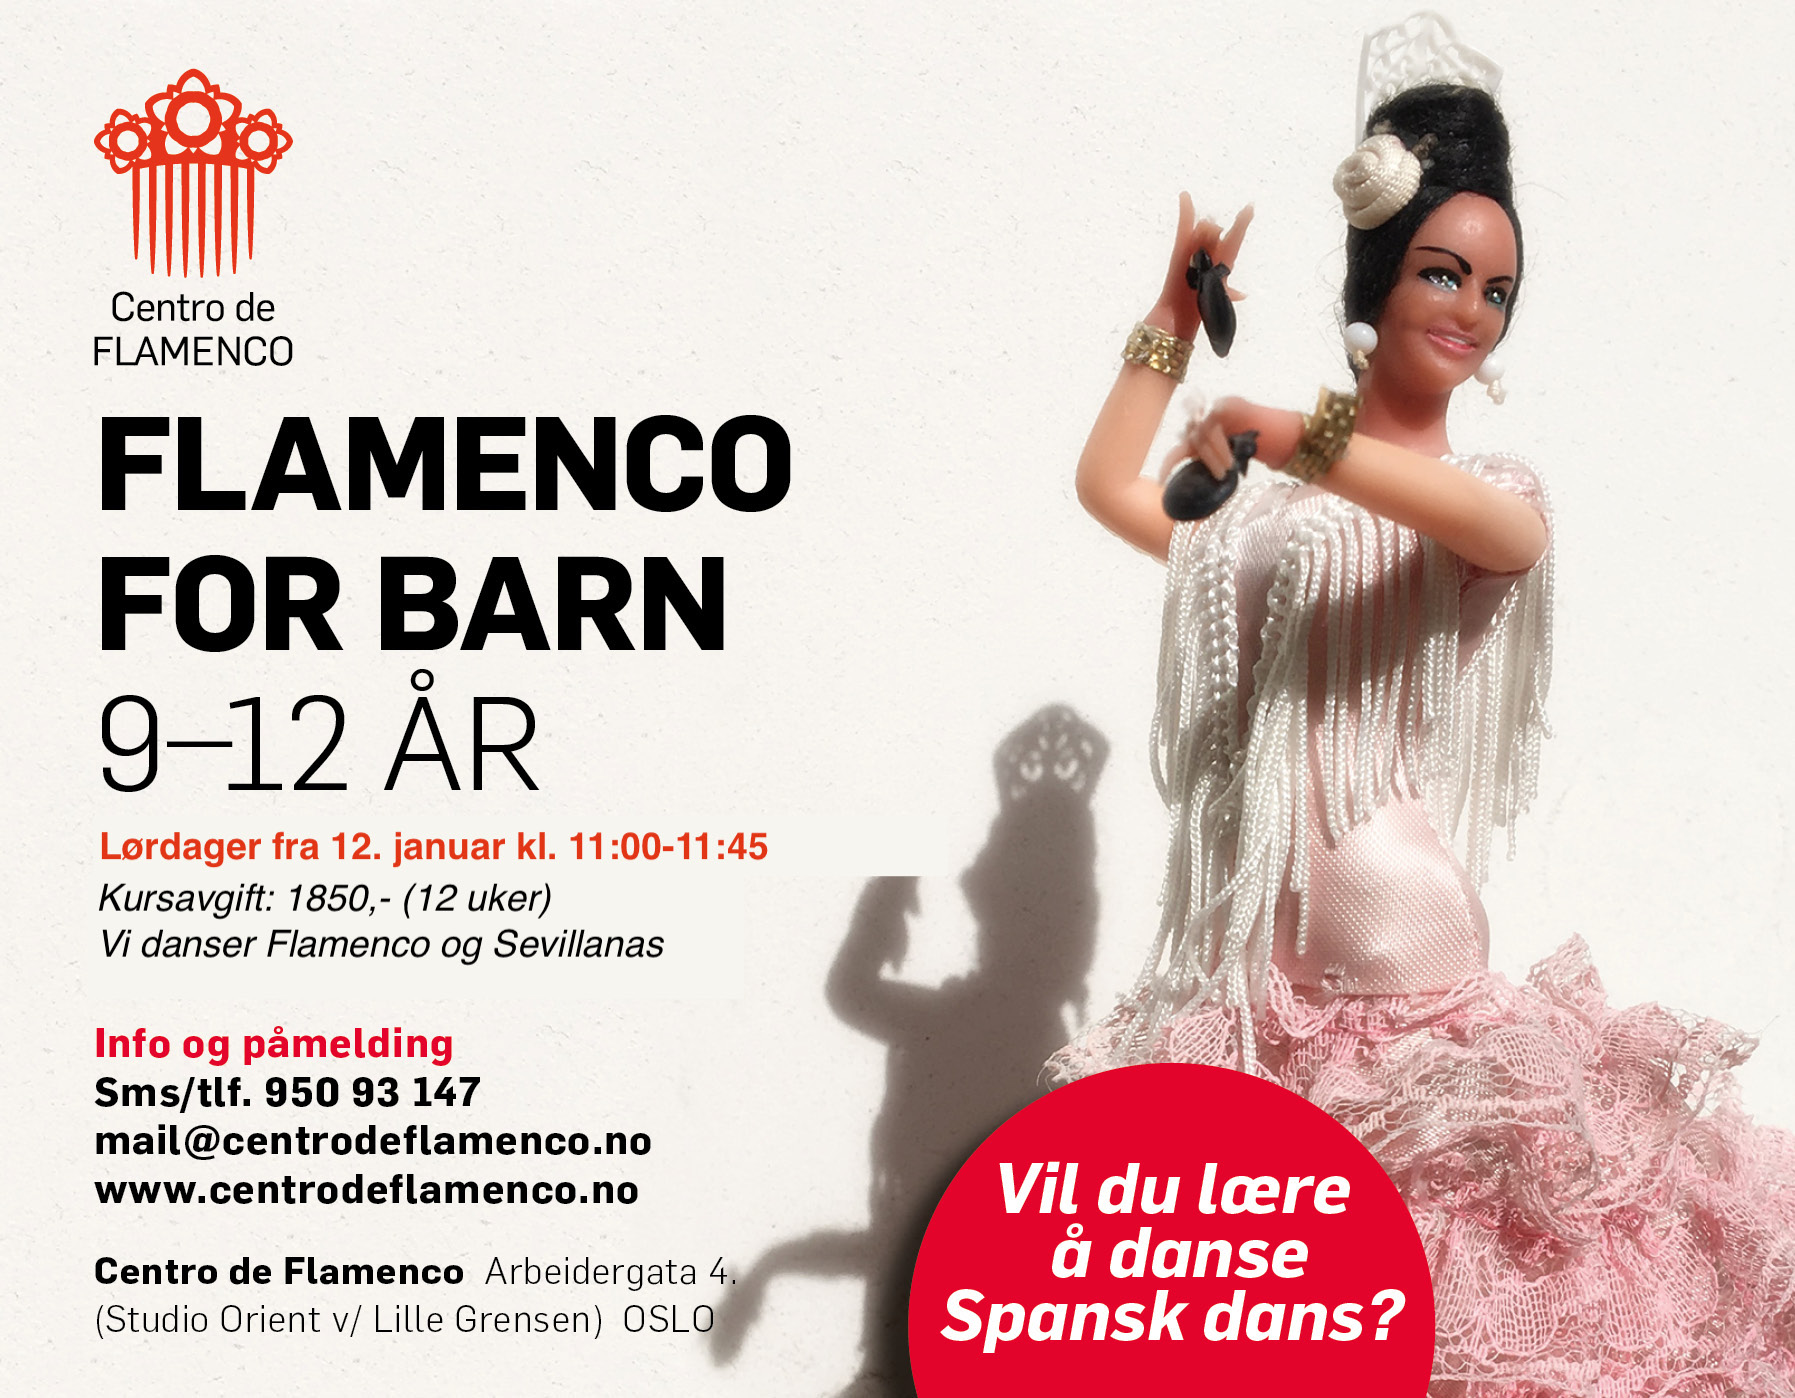 Flamenco for barn